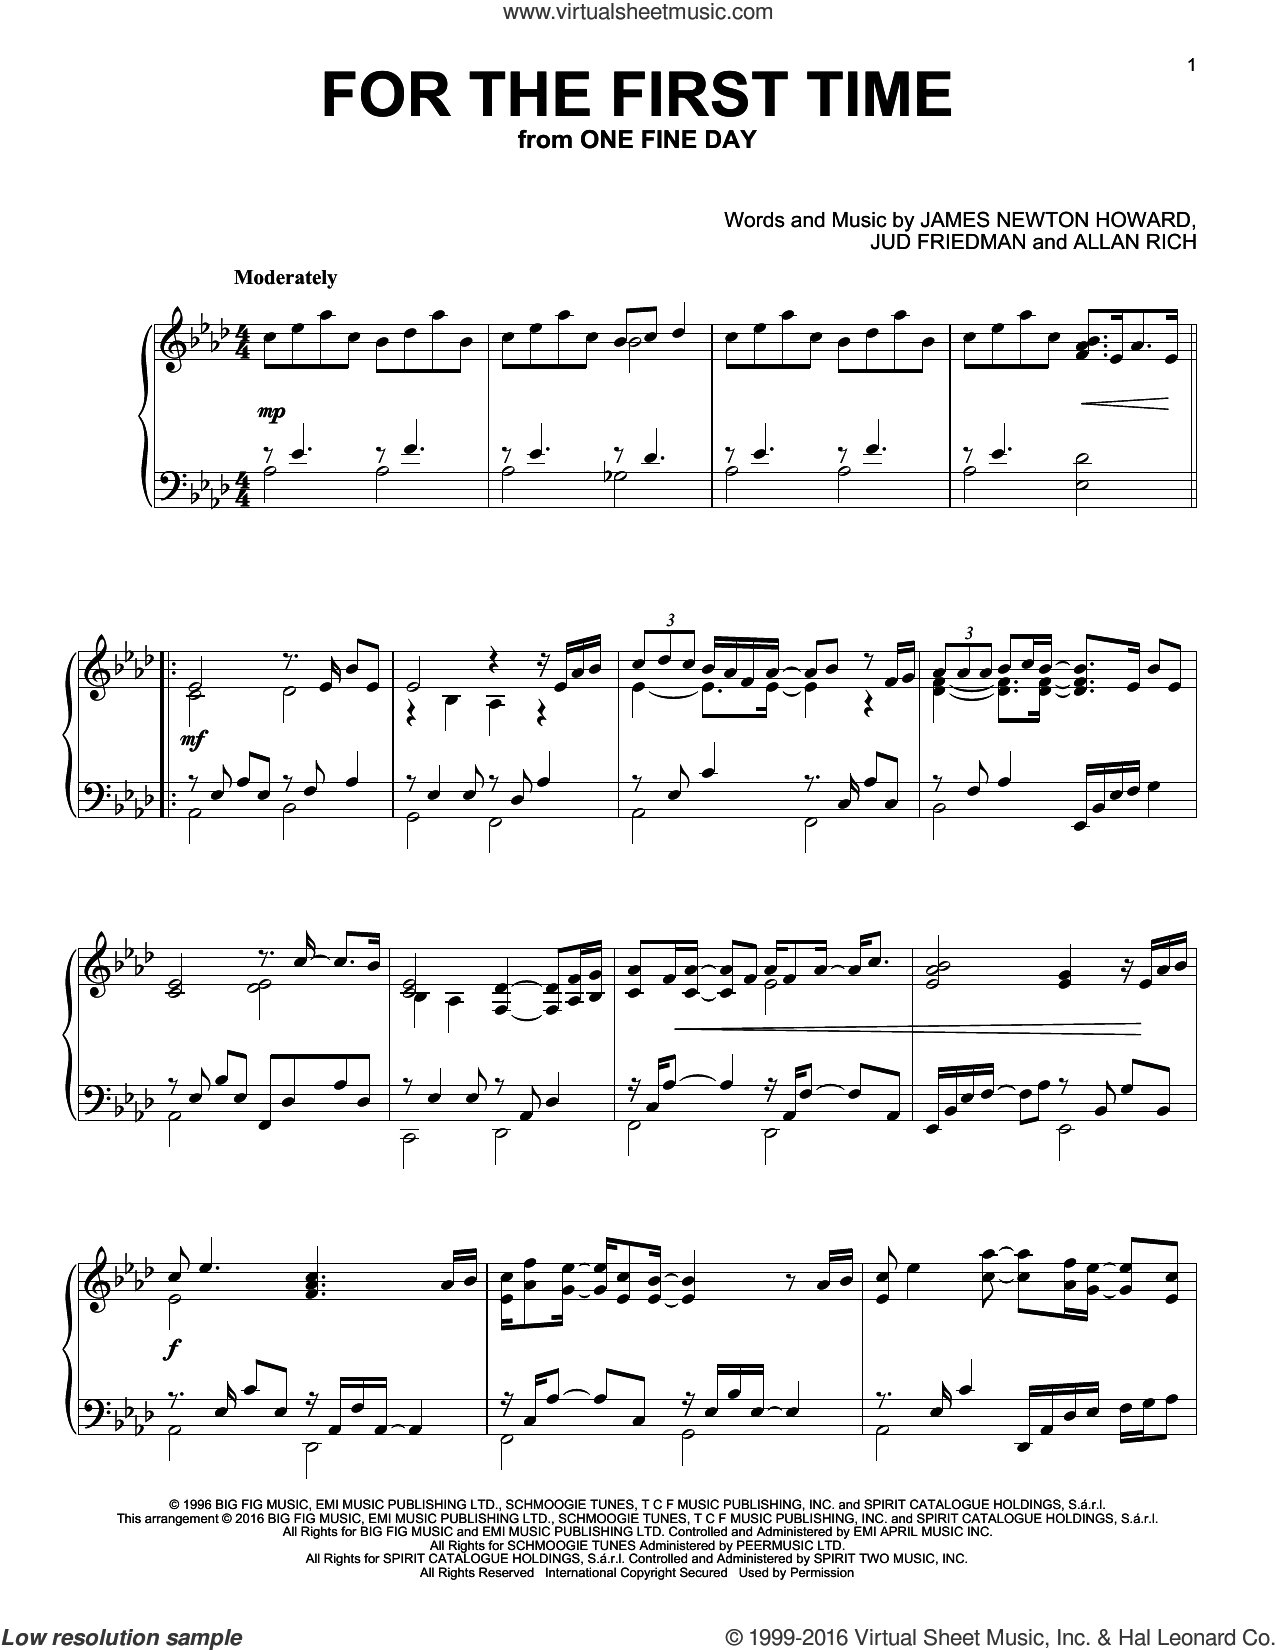 For The First Time sheet music for piano solo by Jud Friedman